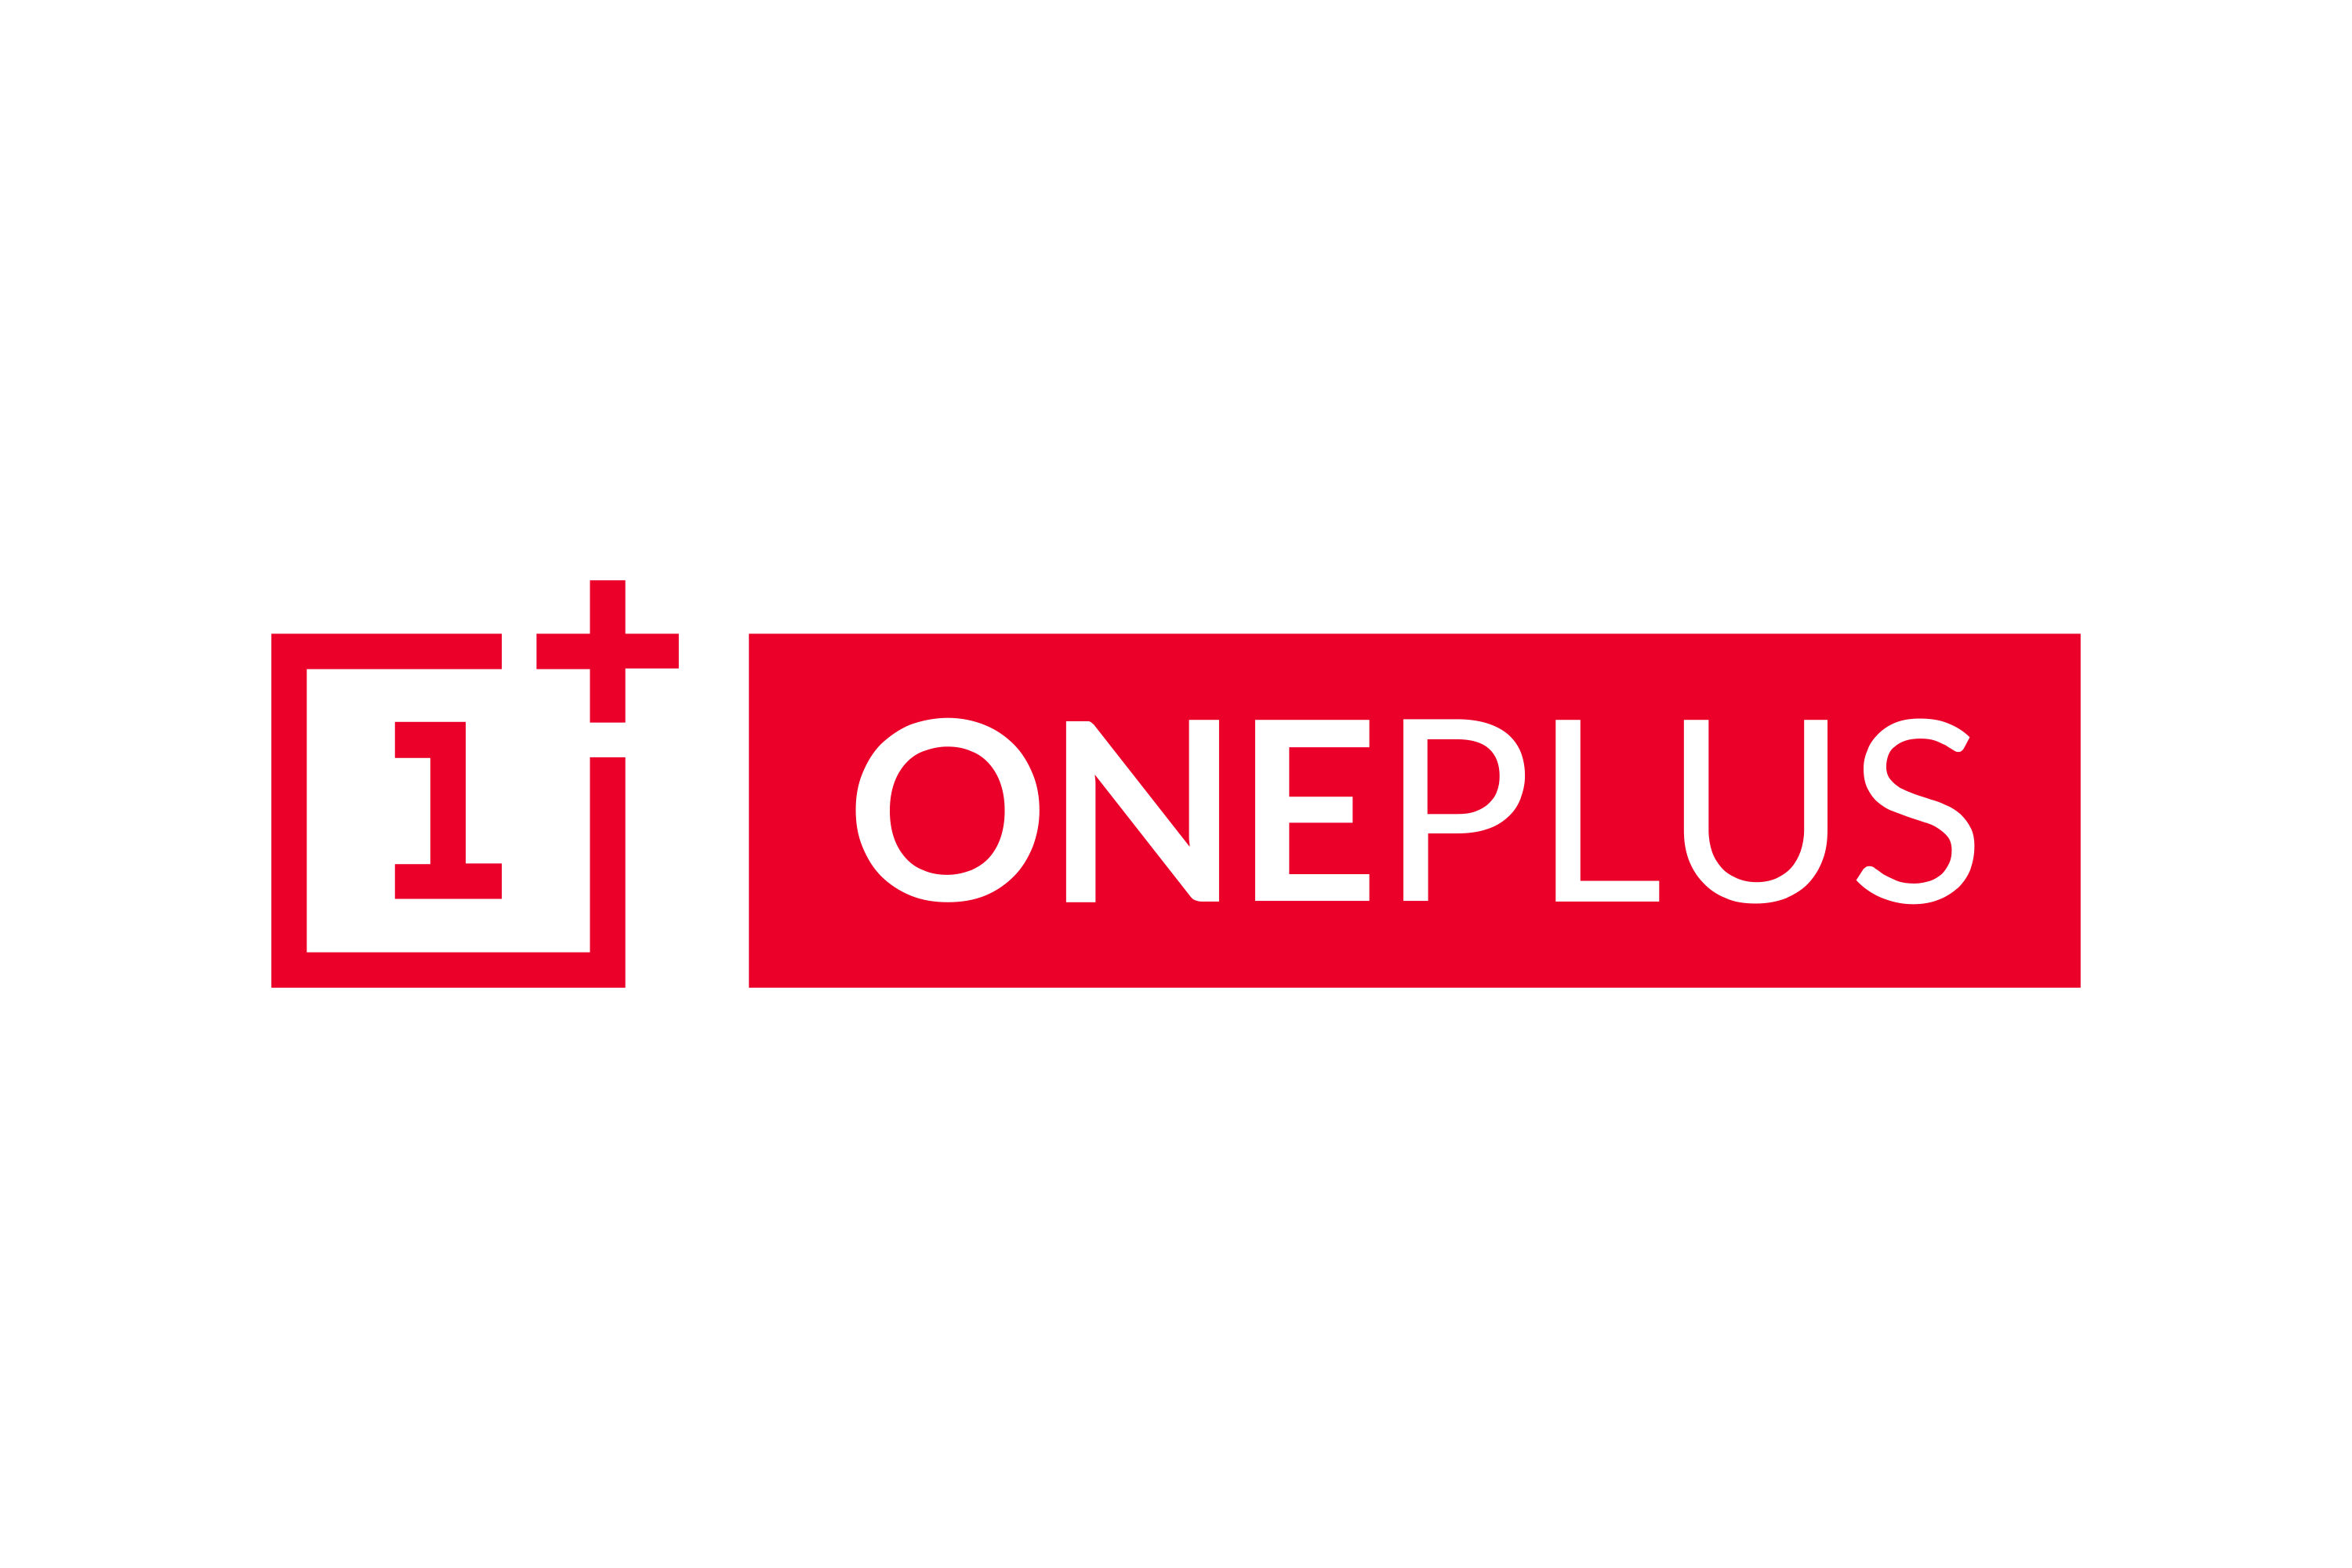 Download OnePlus Logo in SVG Vector or PNG File Format - Logo.wine